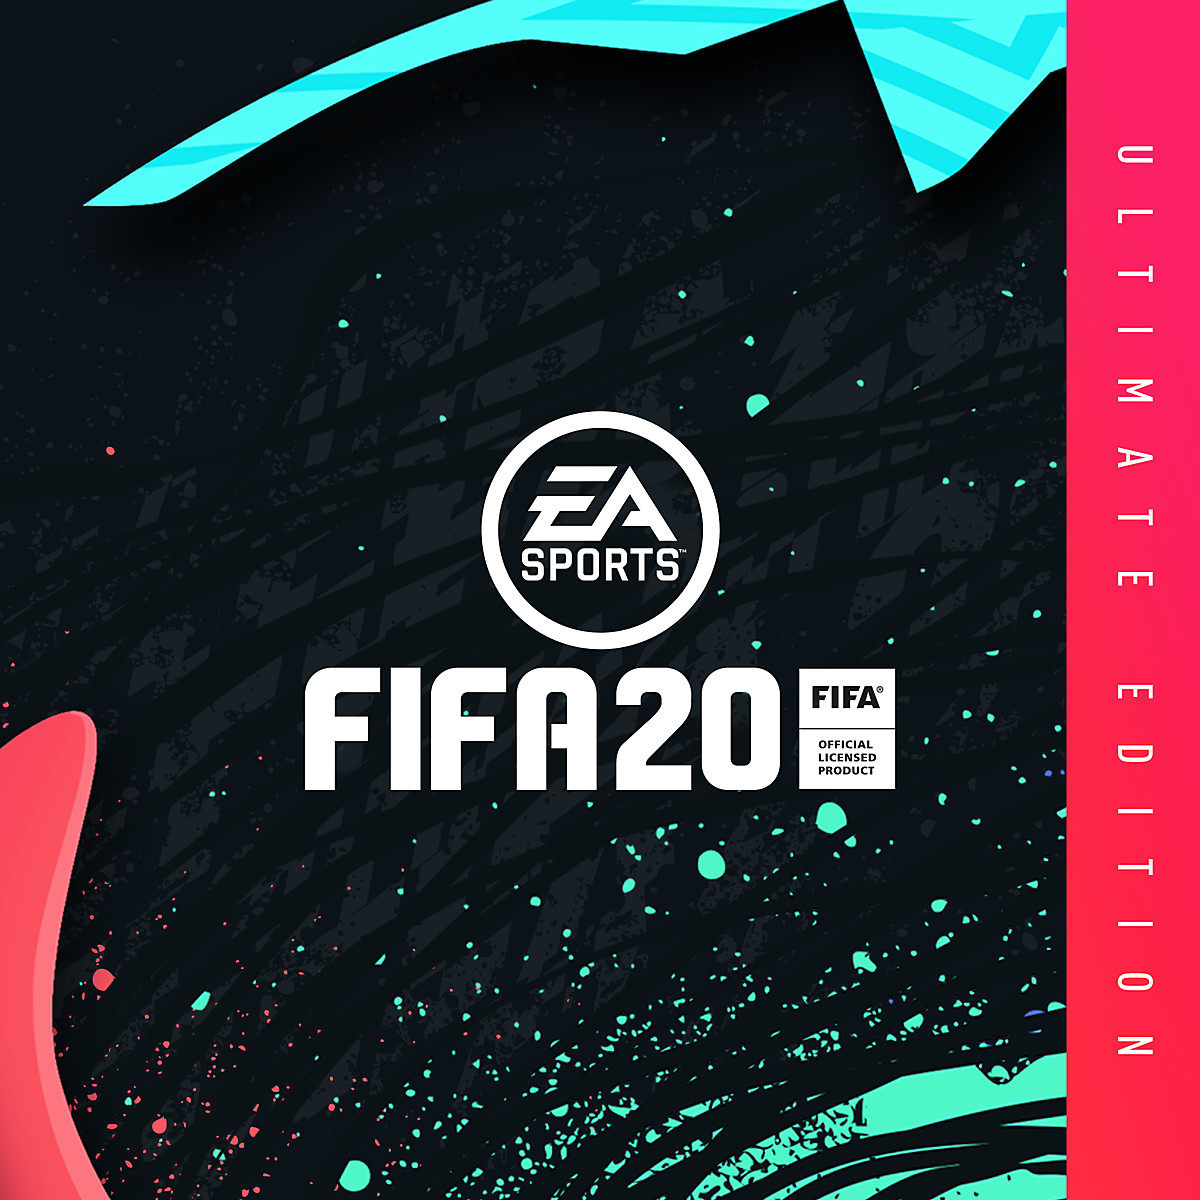 Diseño de FIFA 20 Ultimate Edition